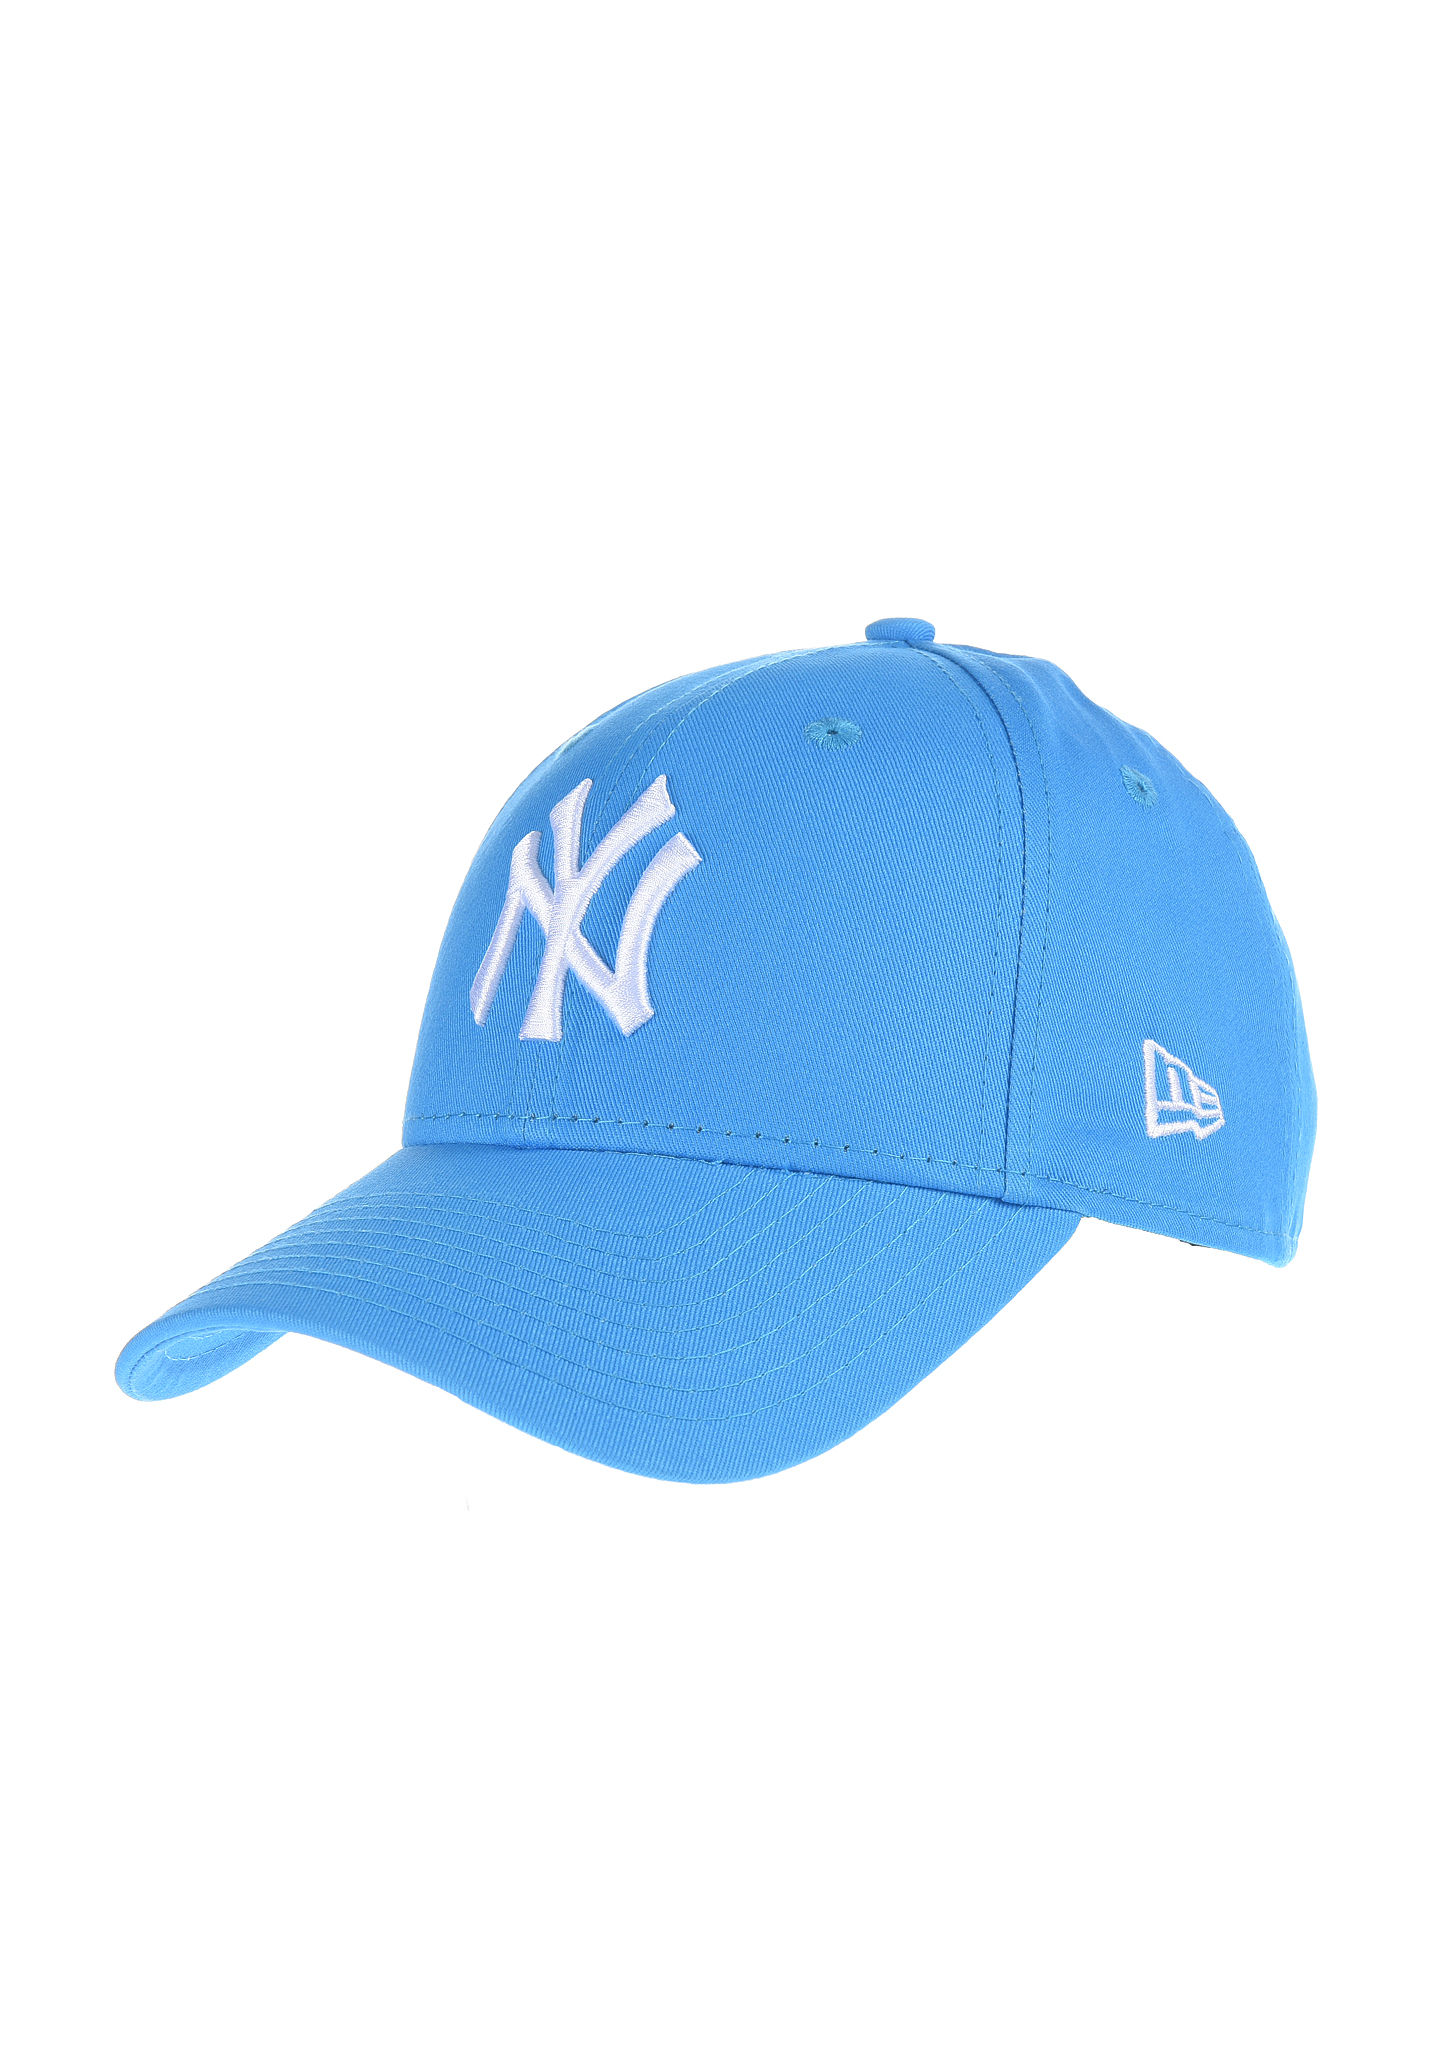 9ed12348980 NEW Era League Essential 940 New York Yankees - Cap for Women - Blue -  Planet Sports